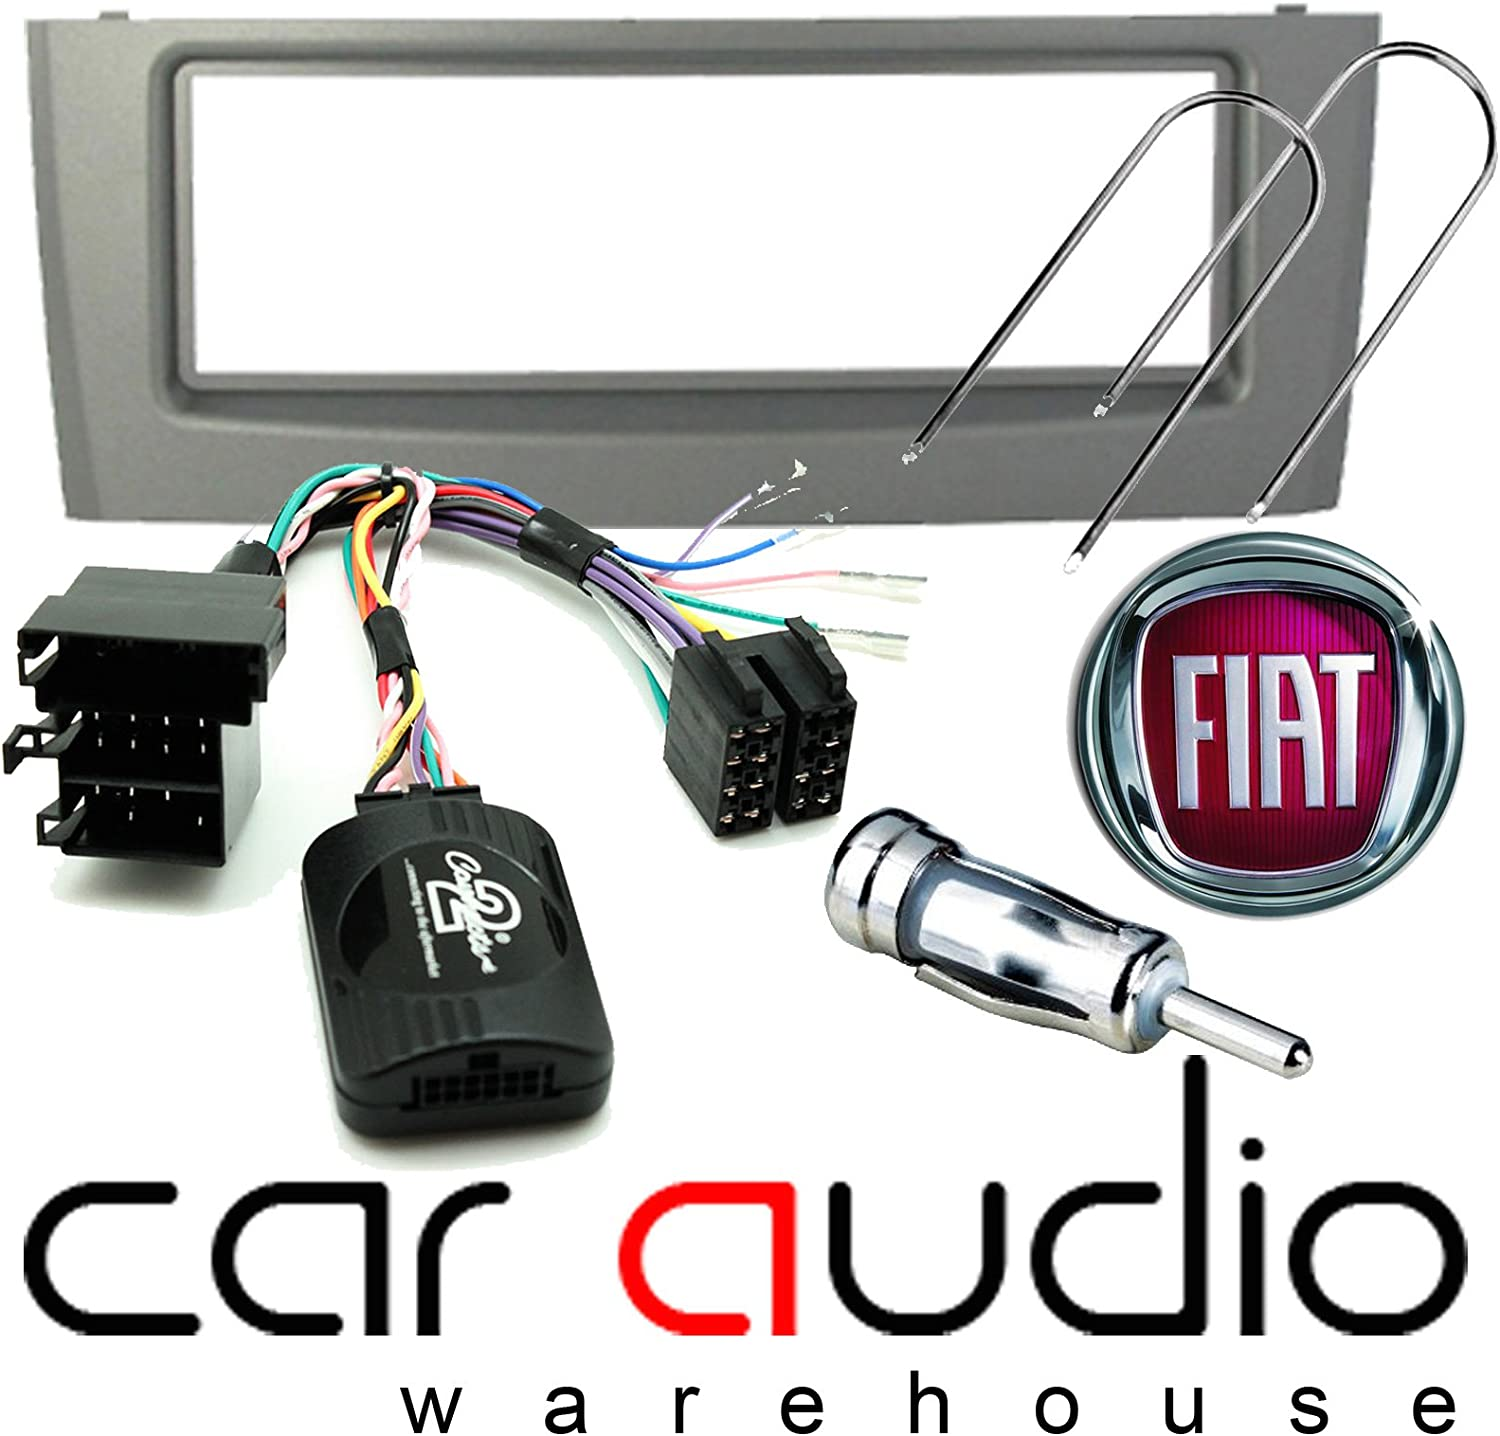 Aerial Adapter and Car Stereo Removal Keys. Steering Stalk Lead T1-Audio T1-CTKVX02 Vauxhall Insignia 2009 Complete Double Din Car Stereo Facia Fitting Kit Black Double Din Facia Panel